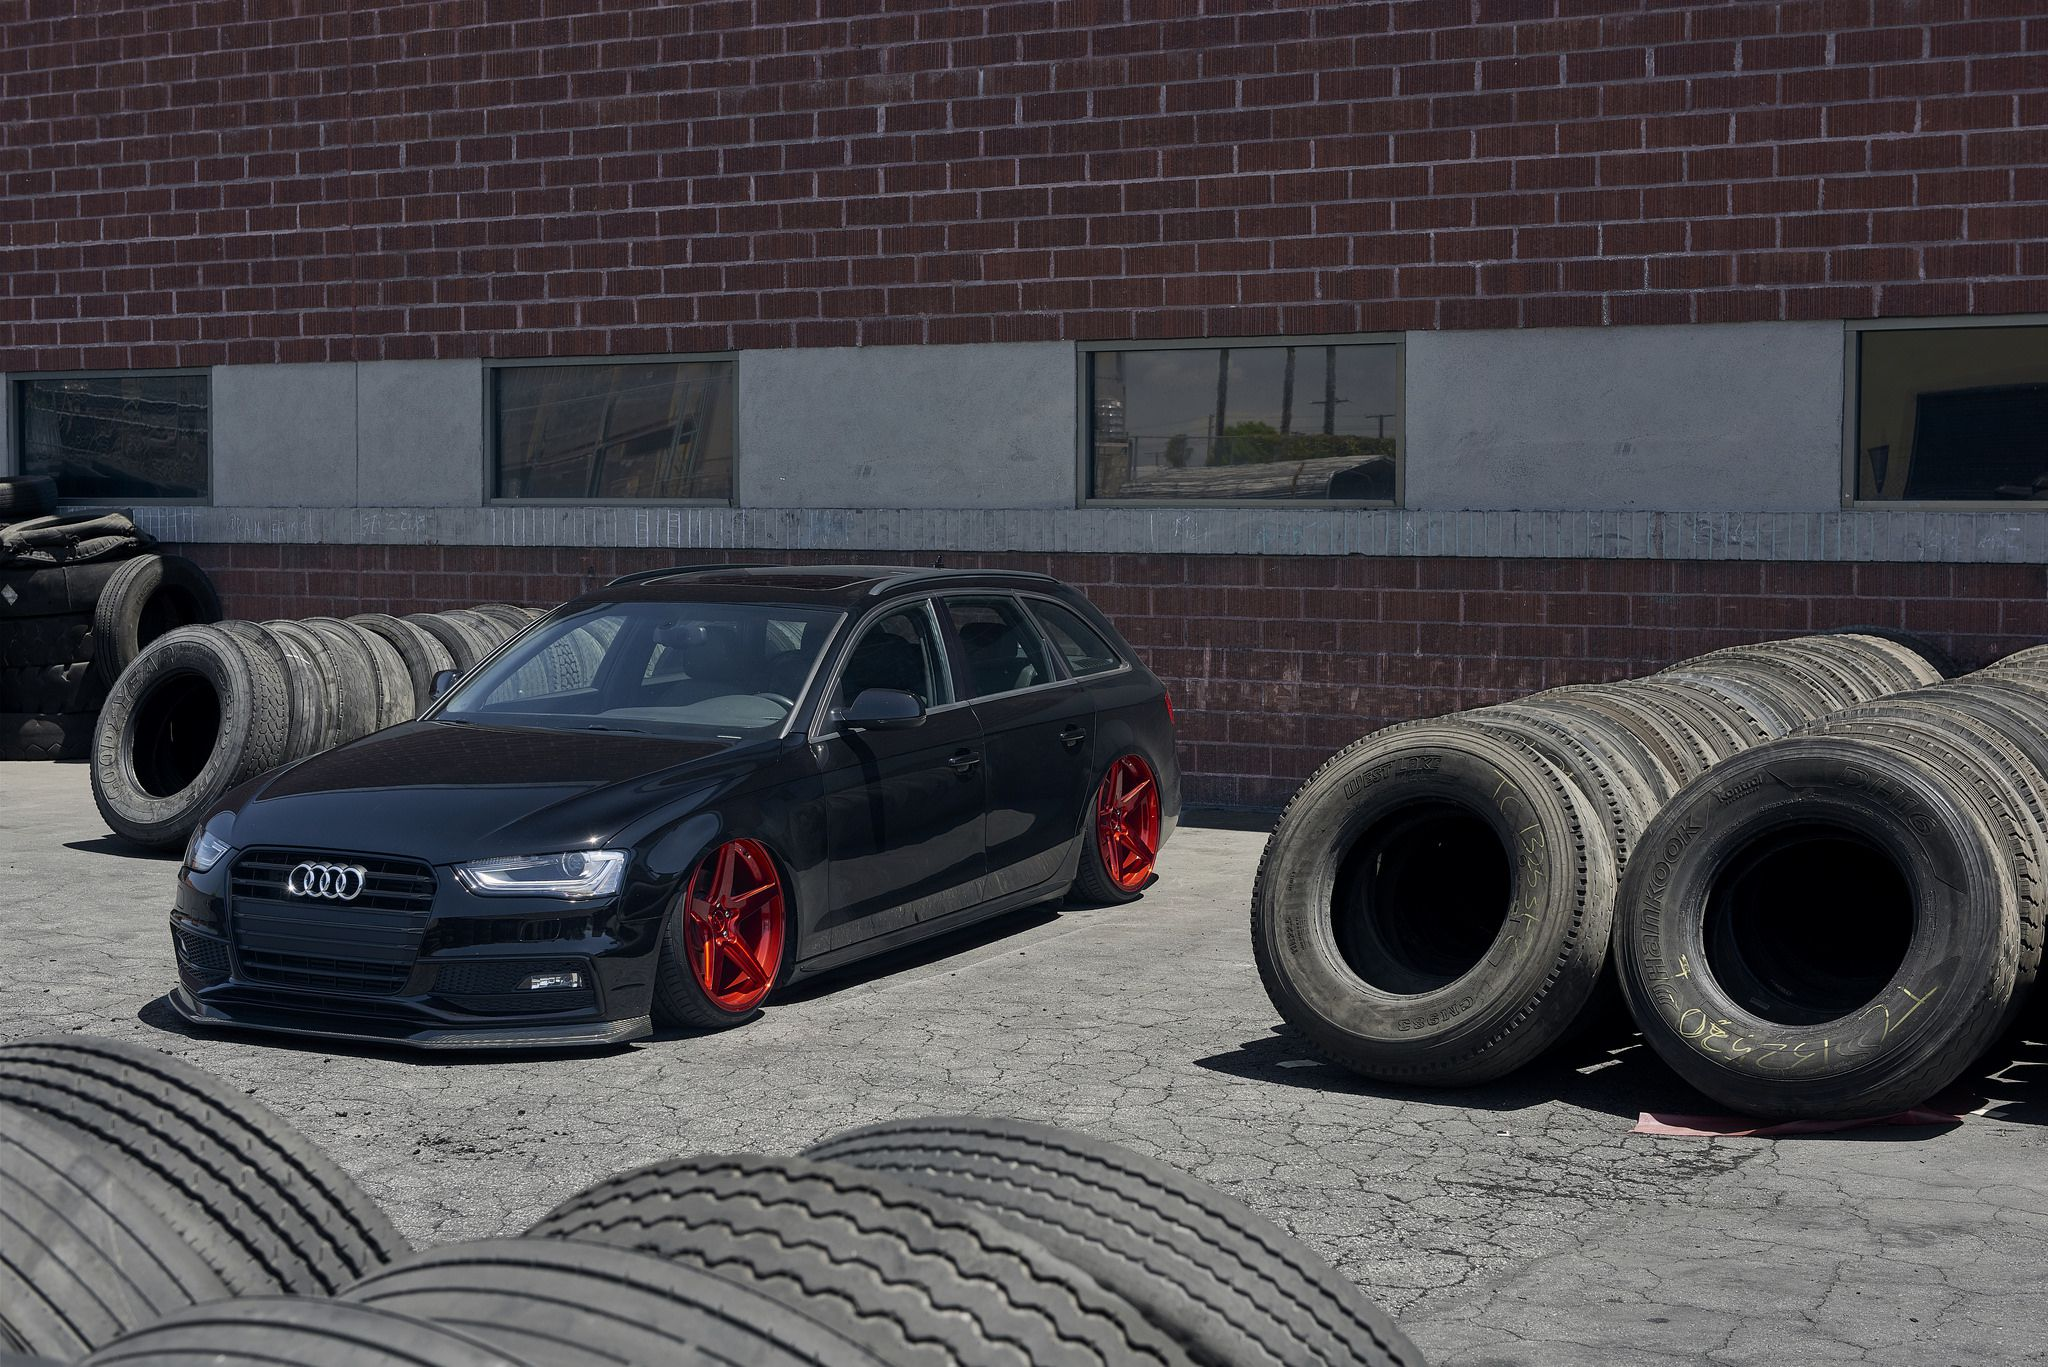 Black tuned Audi B8.5 Avant pictures